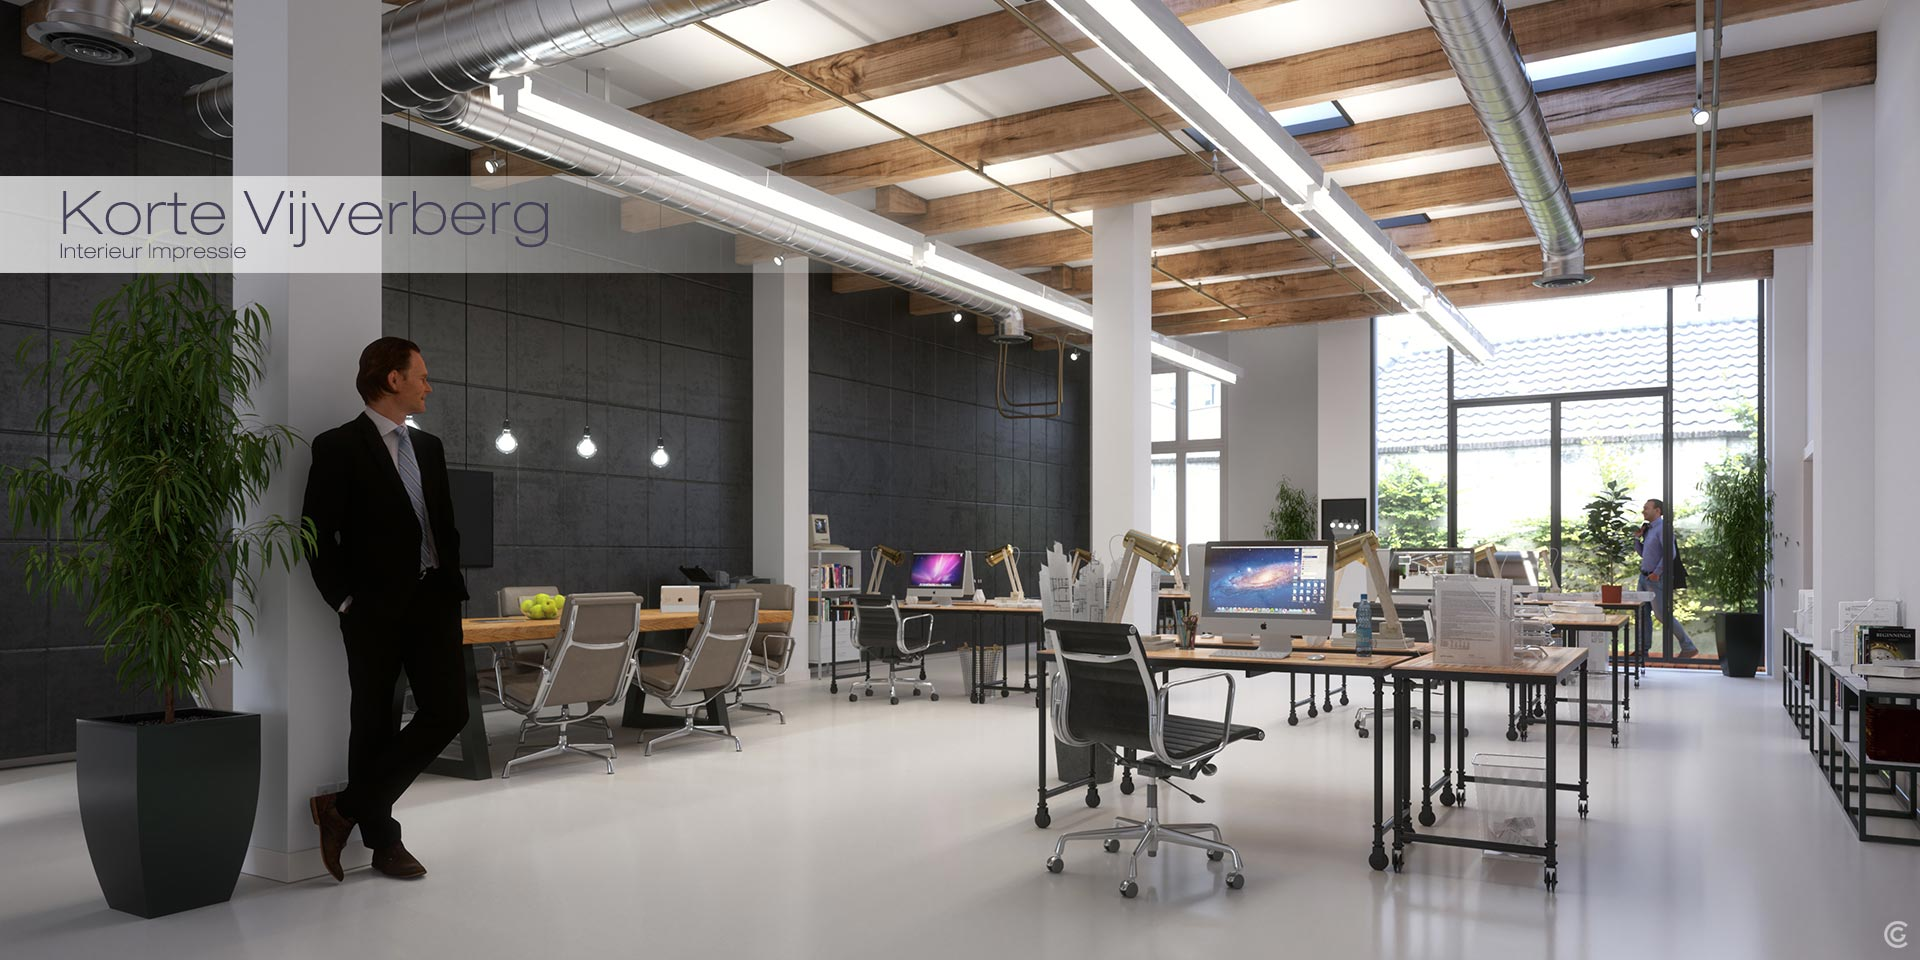 Interior impression of a future office in Den Haag netherlands. House of the King.